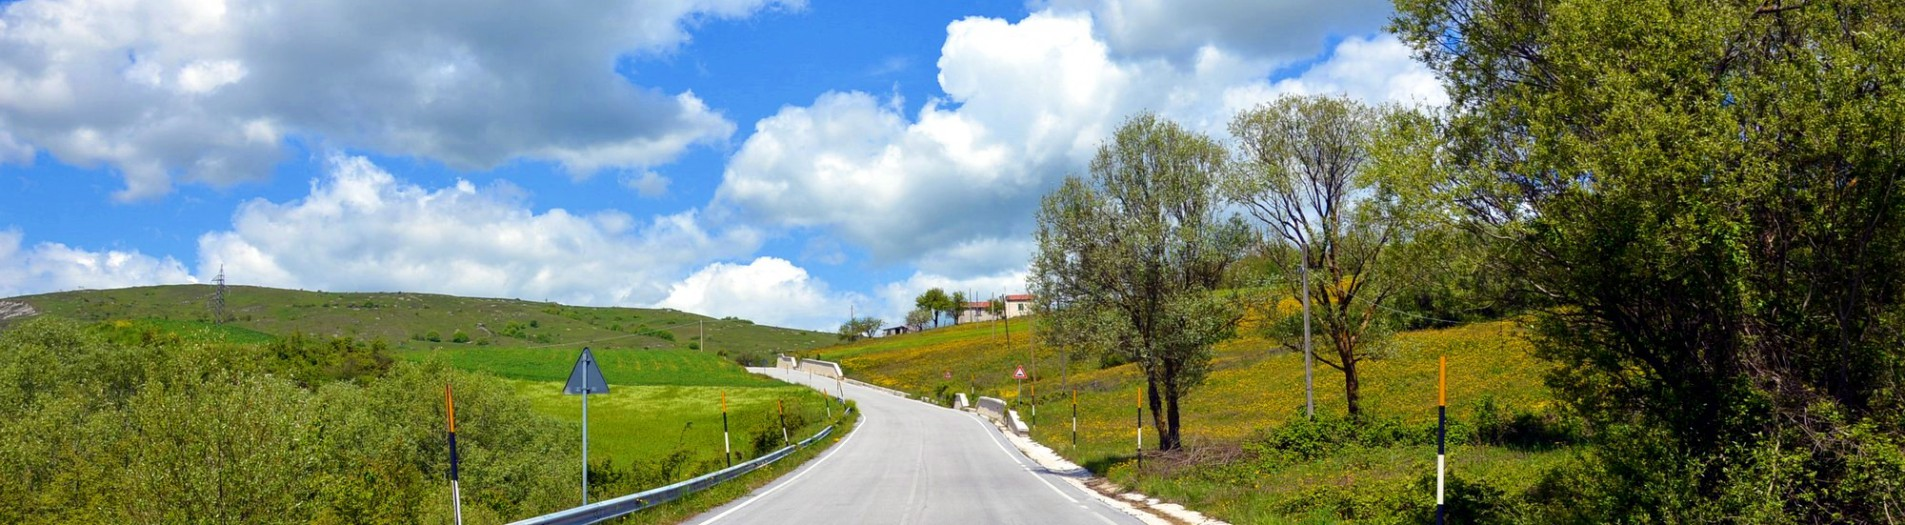 The country side of my birthplace: Agnone